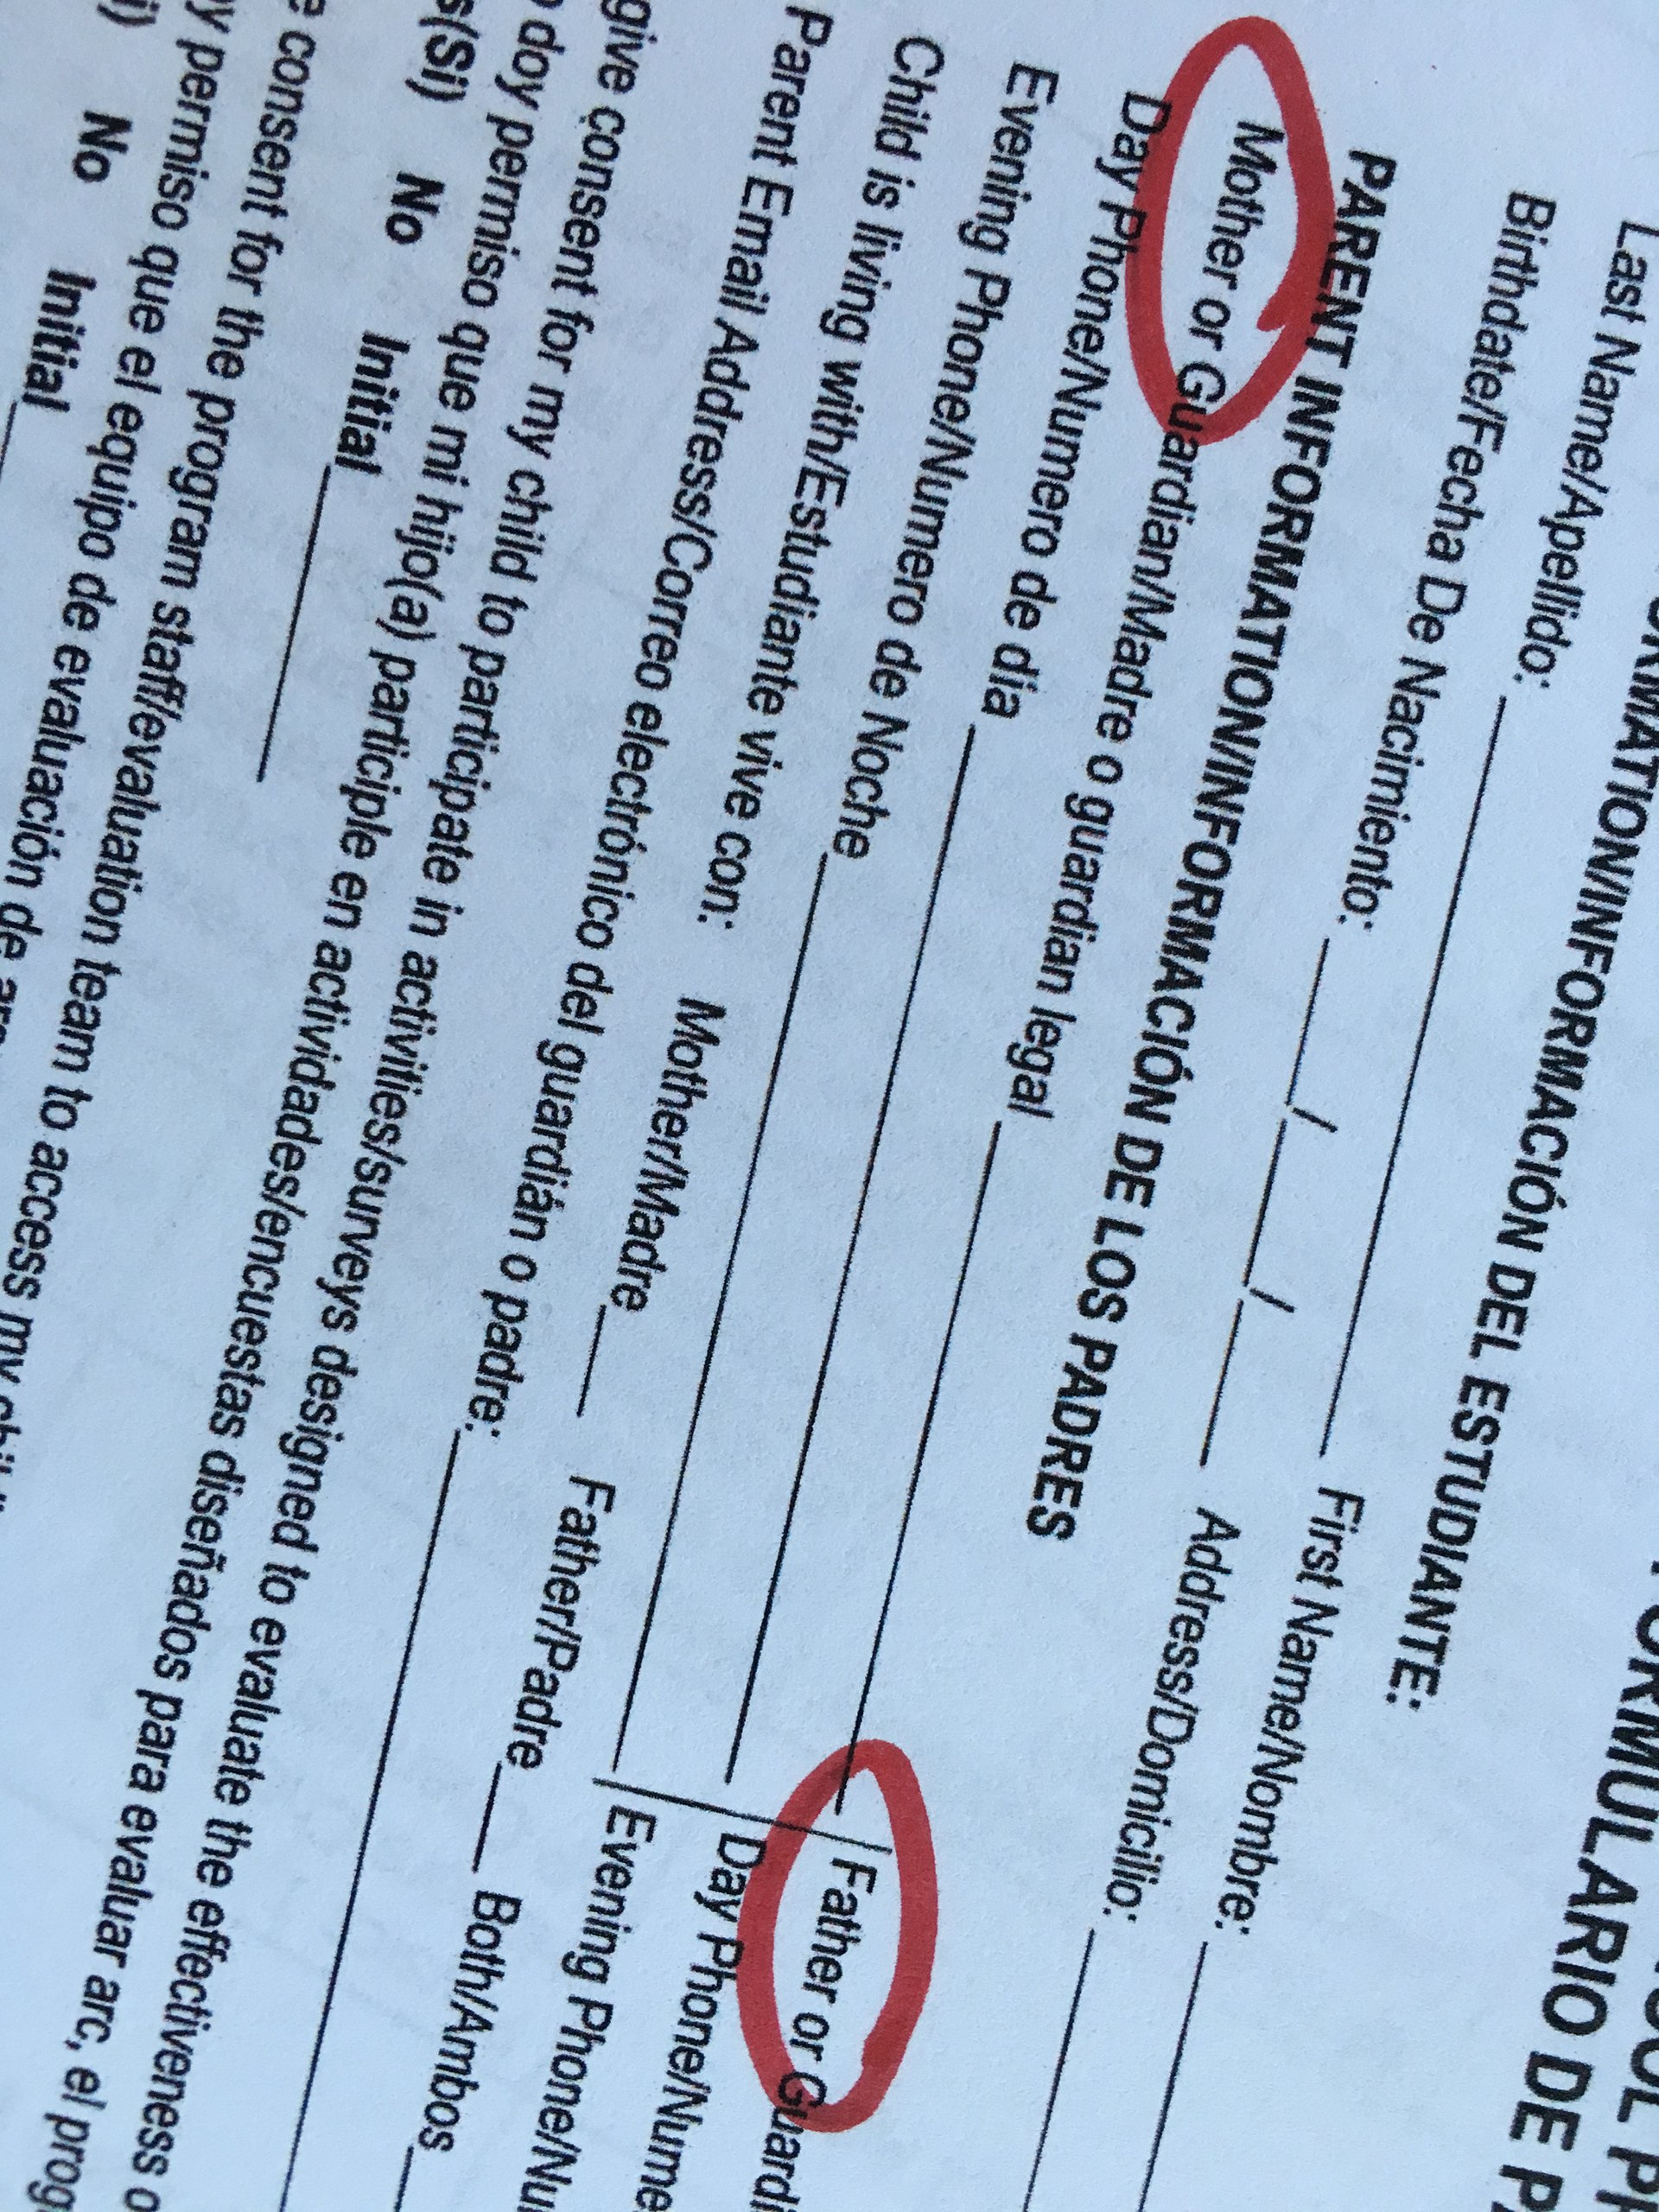 Filling Out Those Damn School Forms